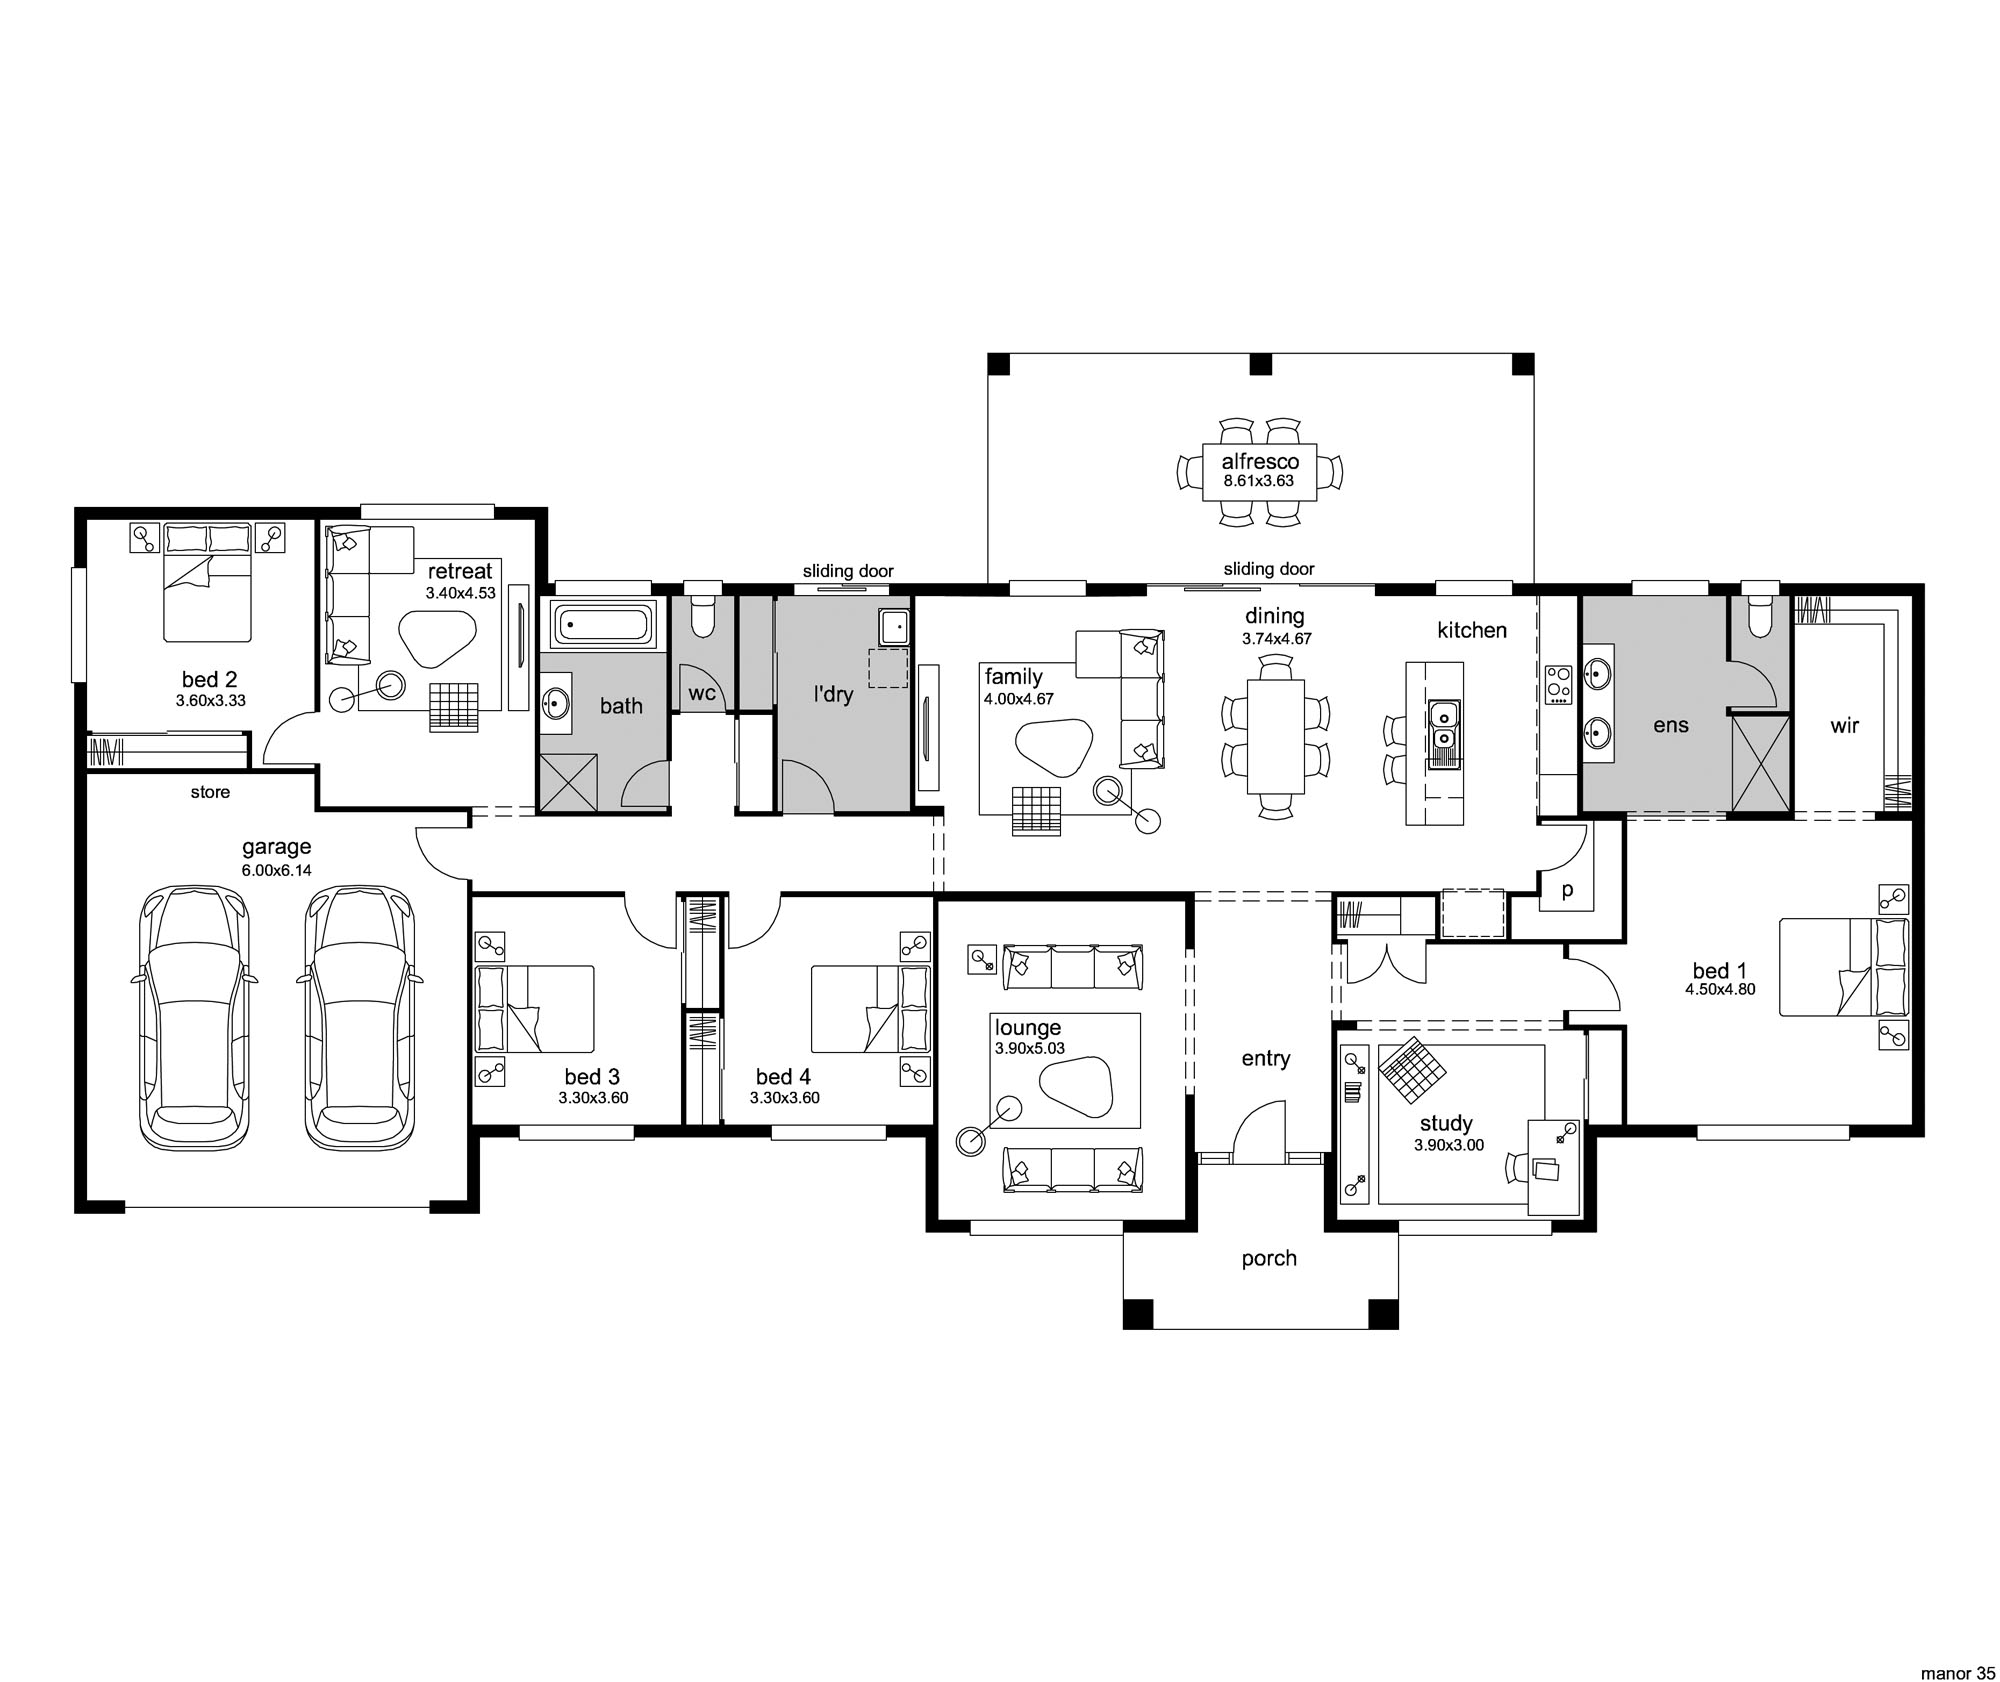 hampton style house plans - manor